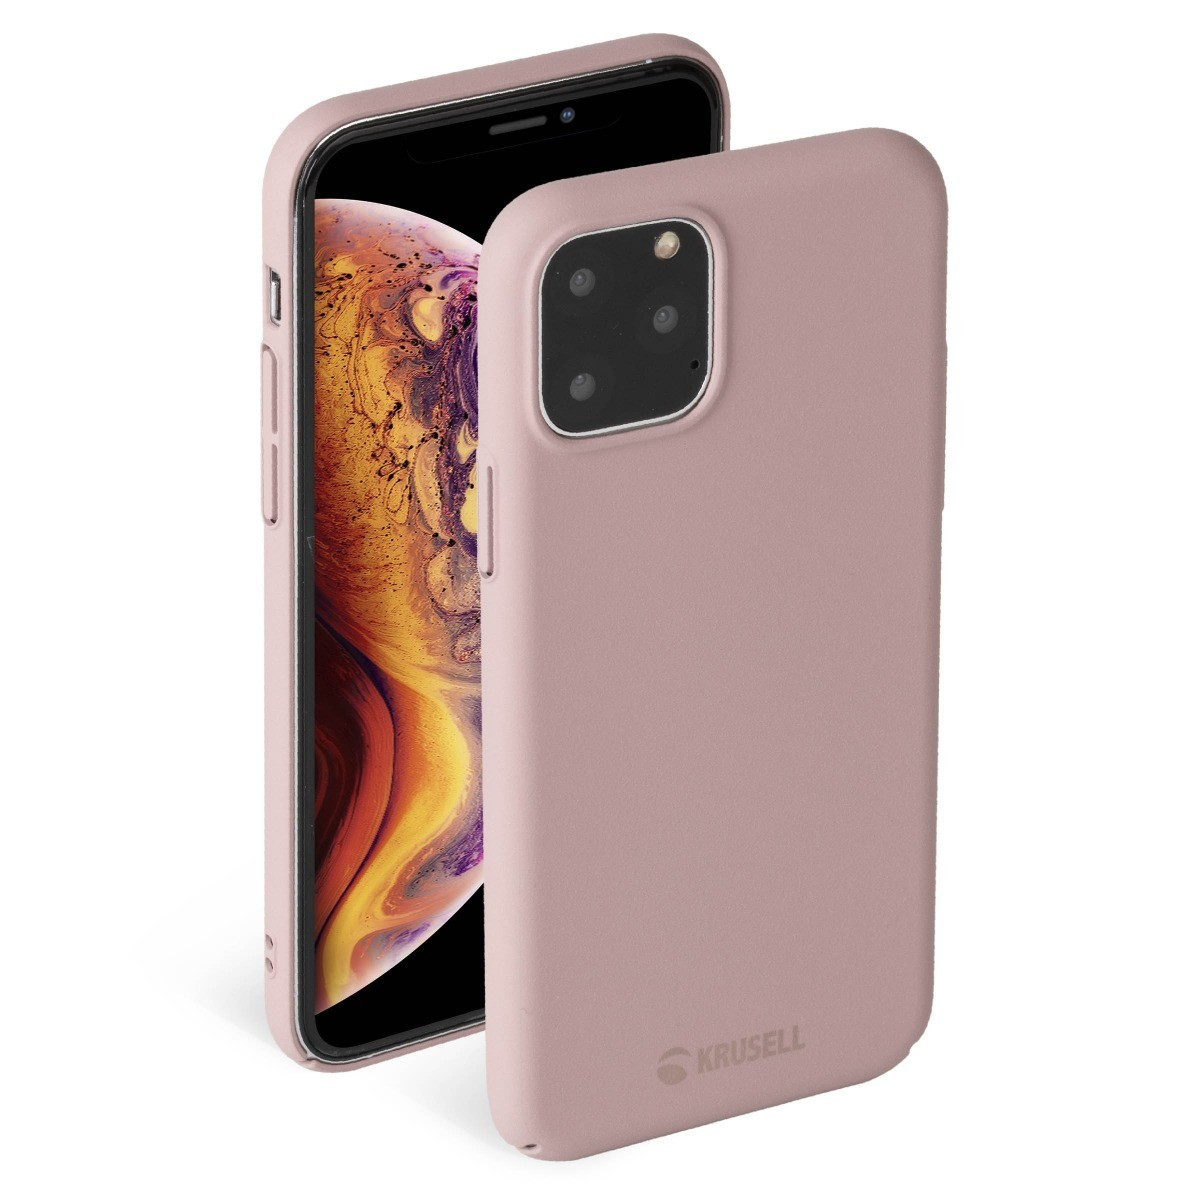 Krusell Sandby Cover Apple iPhone 11 Pro Max - Pink